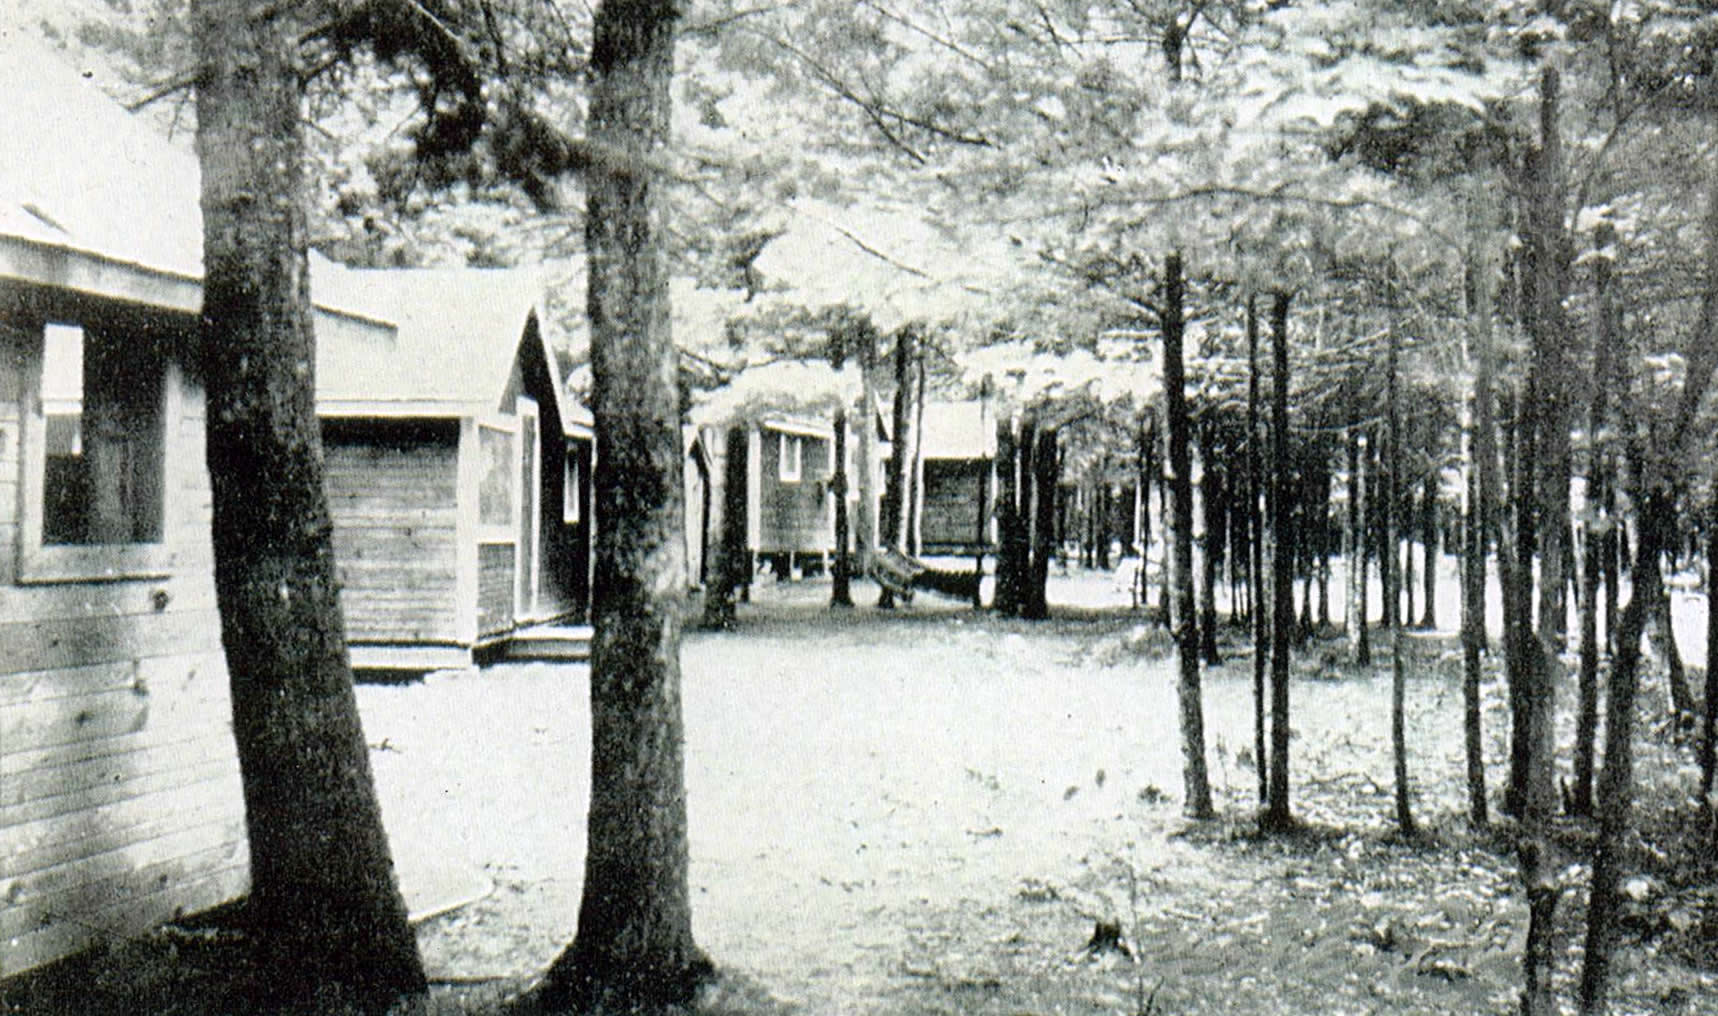 Cabins at Pine Lodge